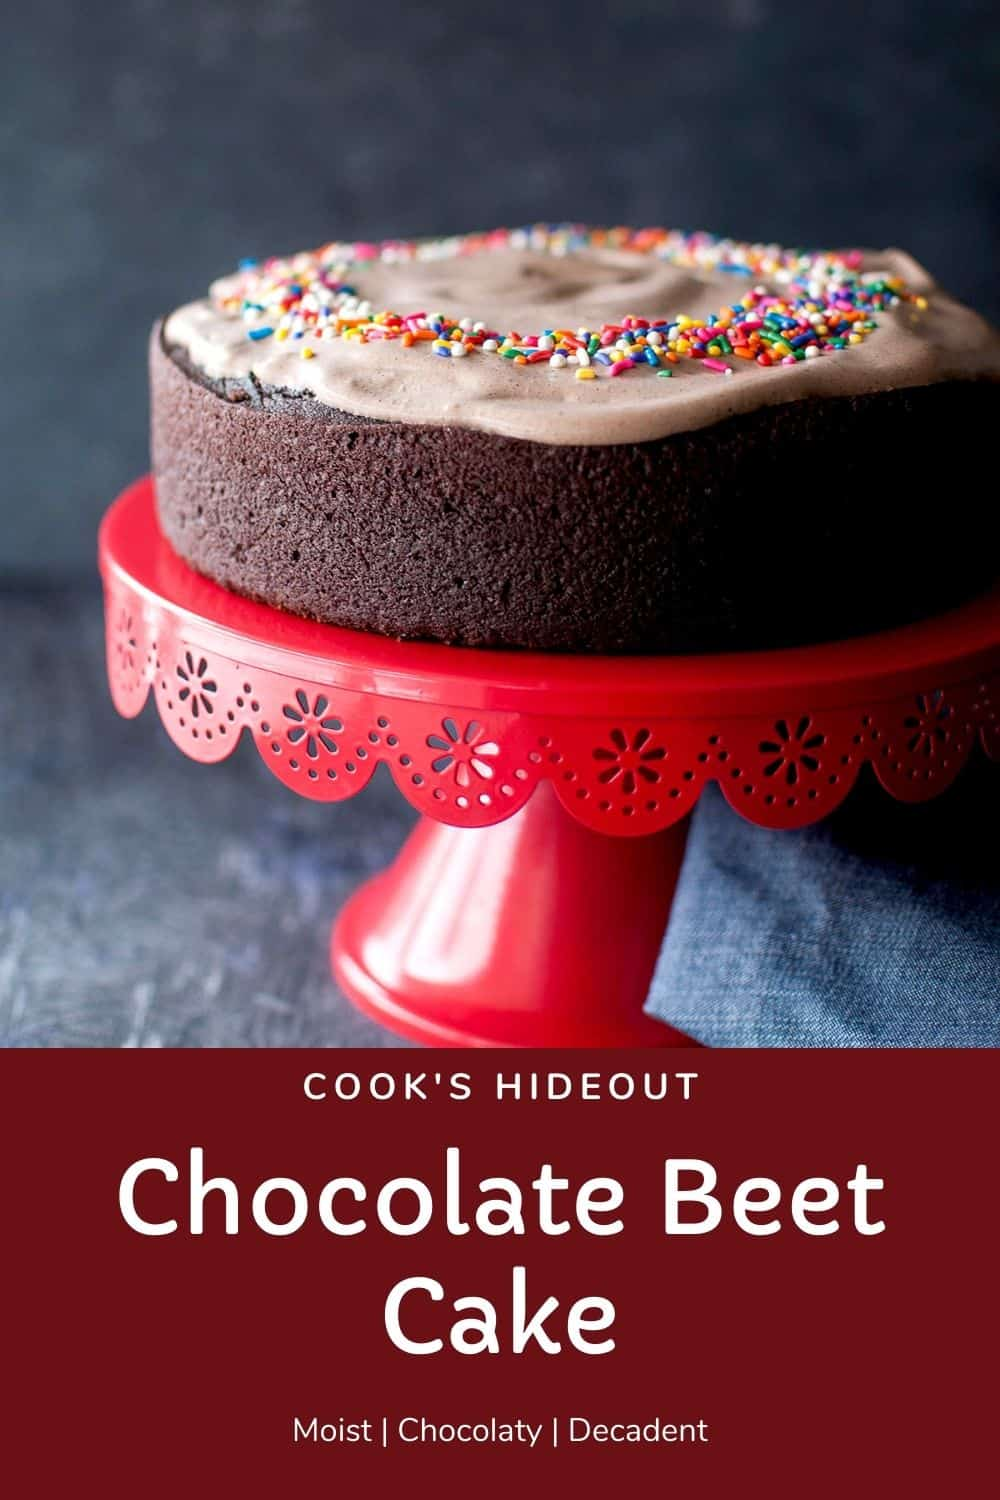 Red cake stand with the vegan chocolate beet cake topped with chocolate frosting and sprinkles